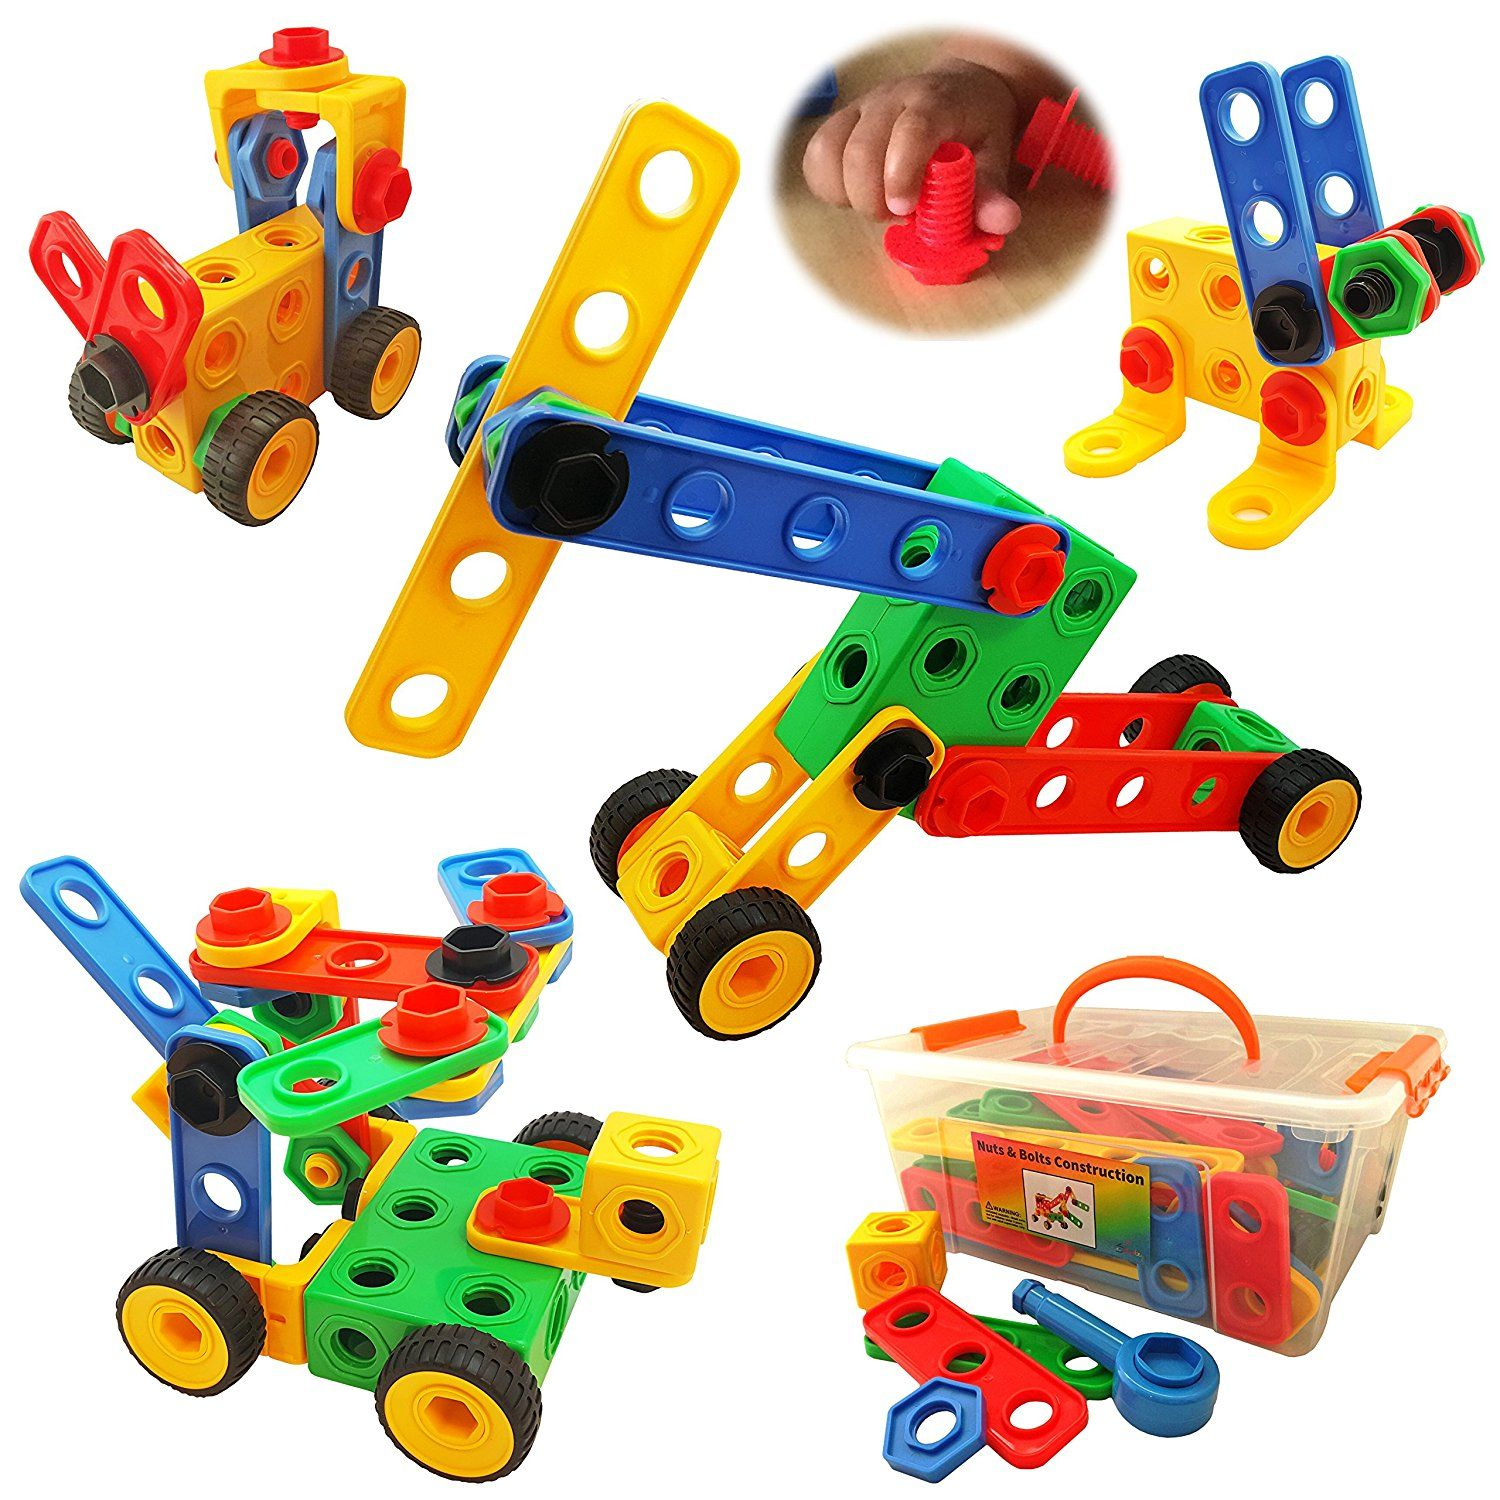 Nuts and Bolts Building Toy for Toddlers to Pre ...